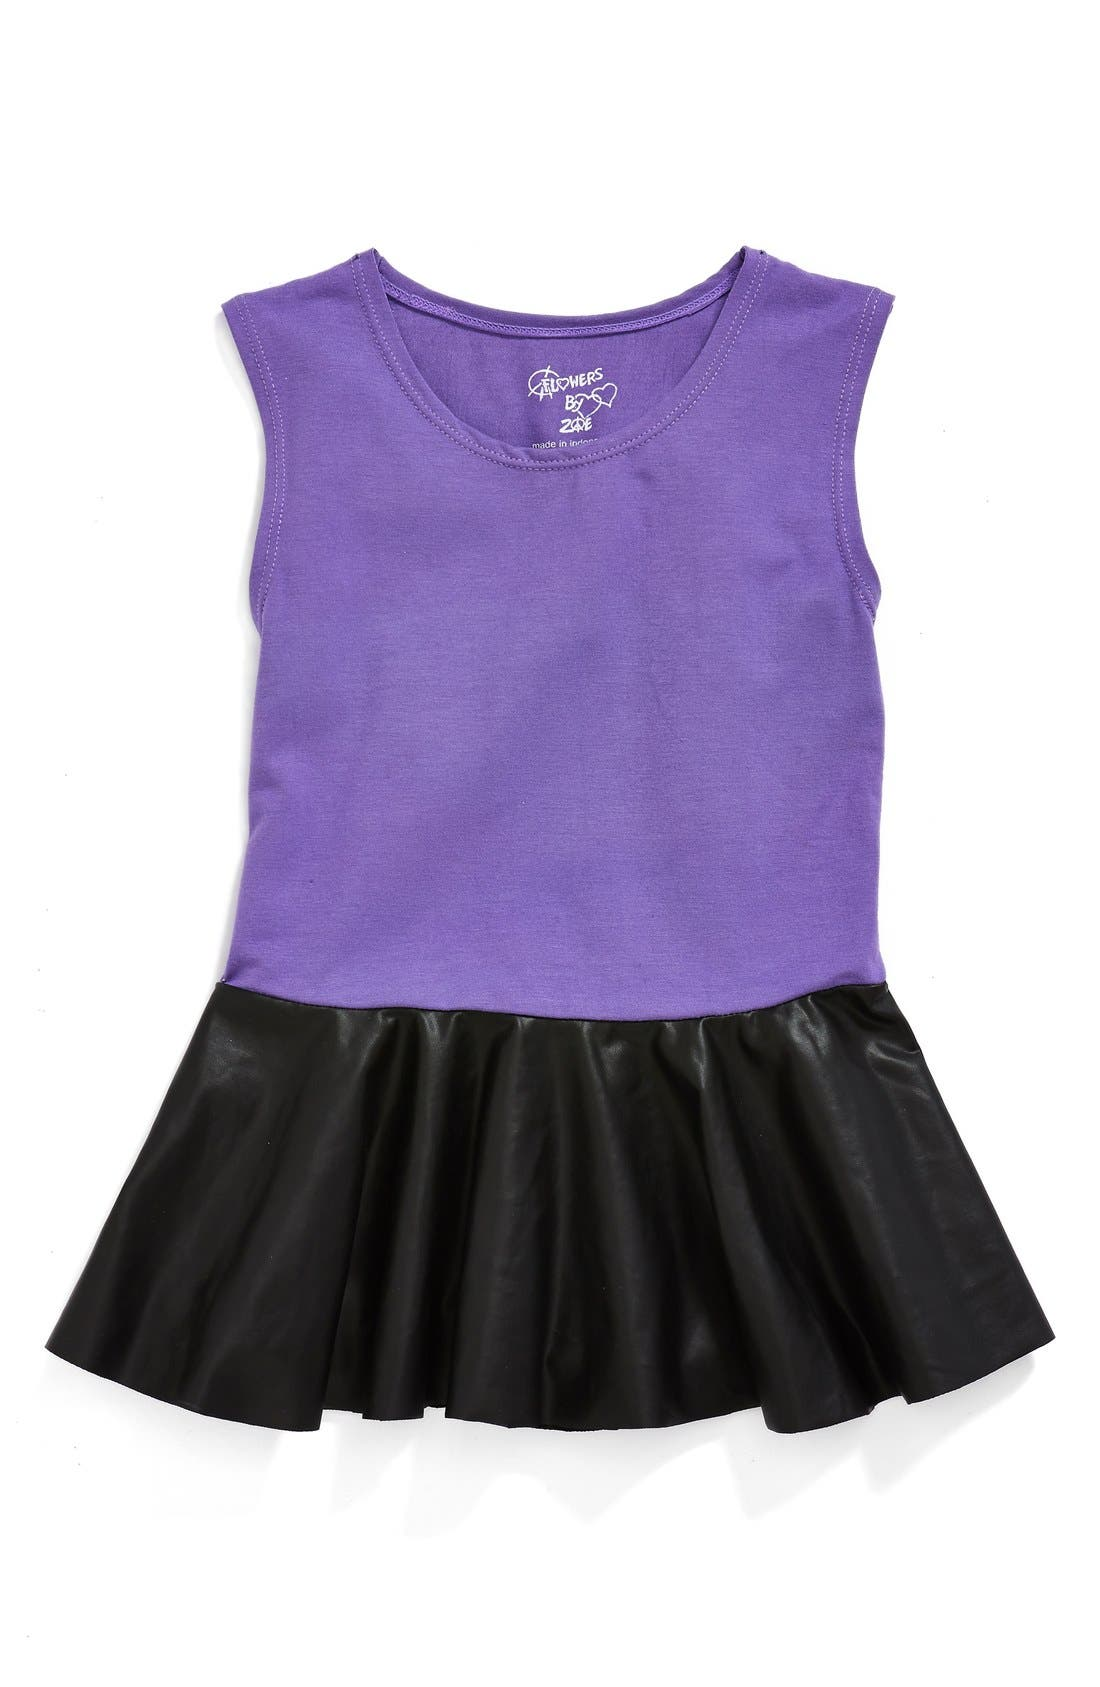 Main Image - Flowers by Zoe Faux Leather Peplum Top (Big Girls) (Online Only)